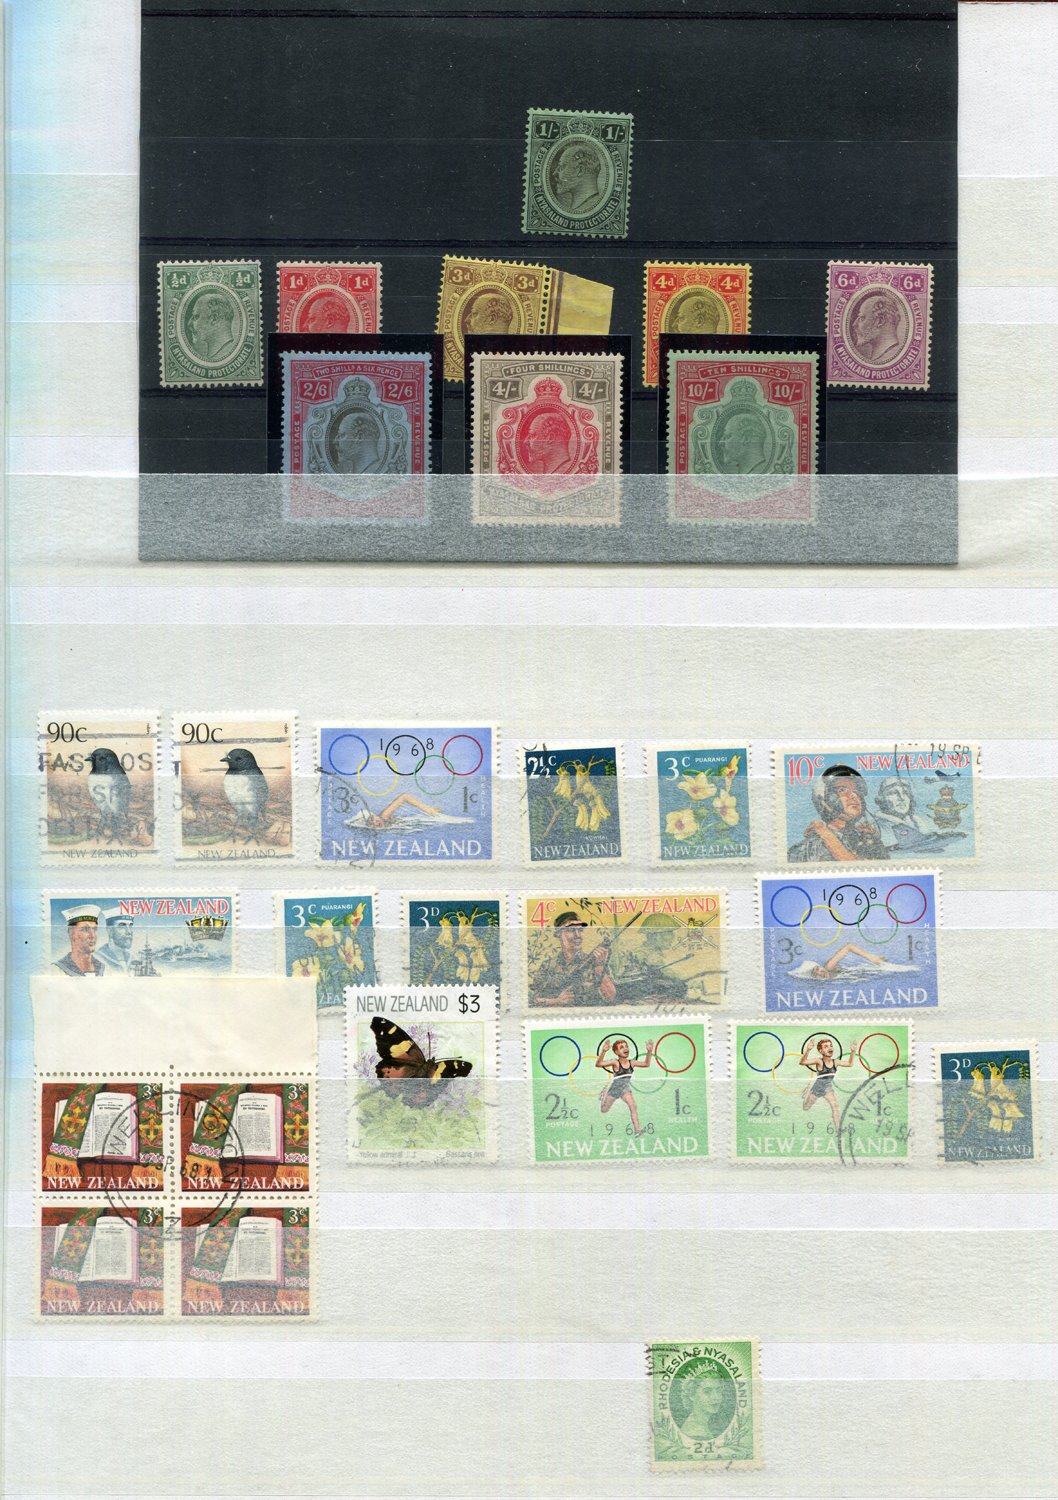 Lot 3050 - A stamp album and stock book with some loose pages, including Australia, British Commonwealth,